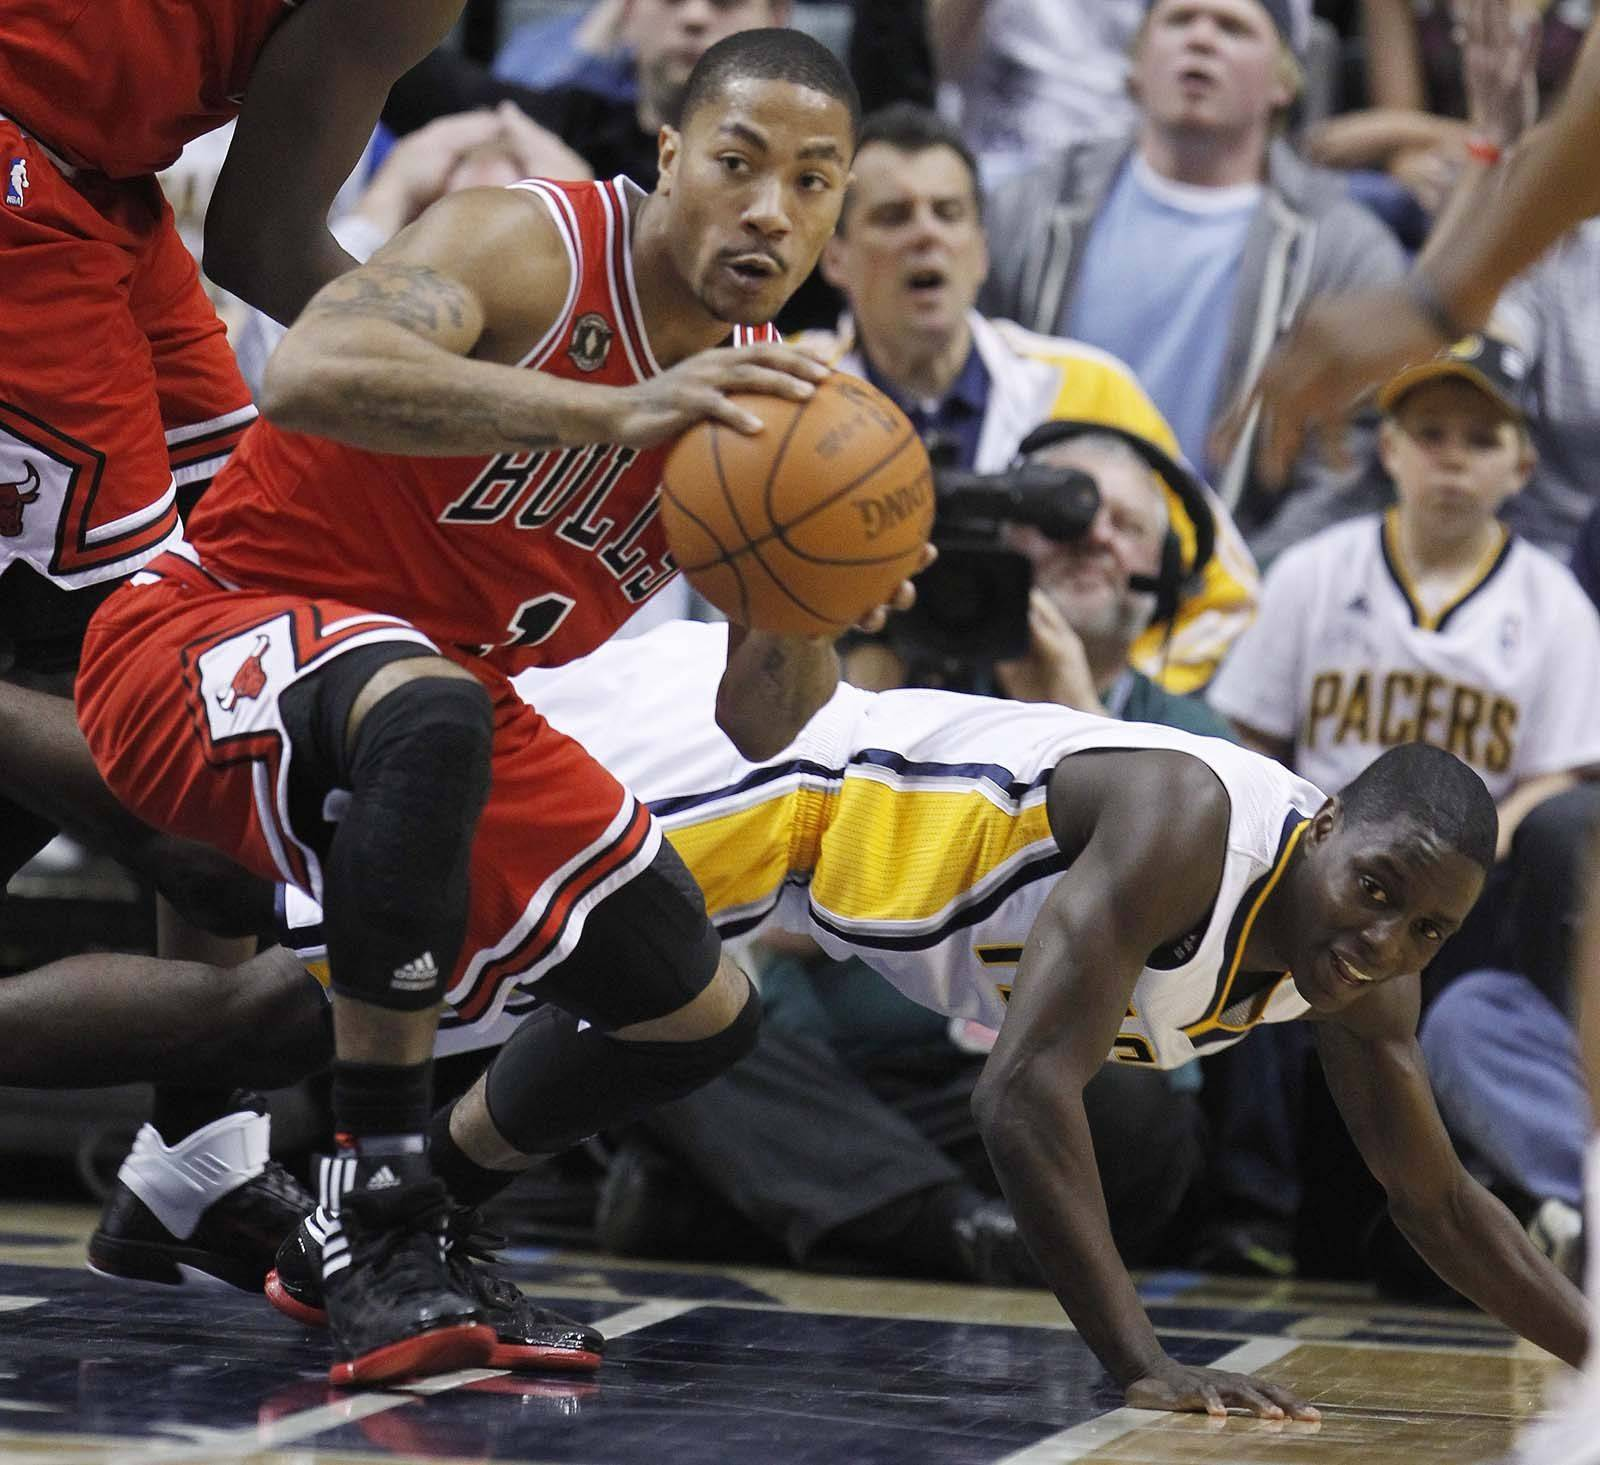 Chicago Bulls' Derrick Rose (1) grabs a loose ball in front of Indiana Pacers' Darren Collison during the first half.